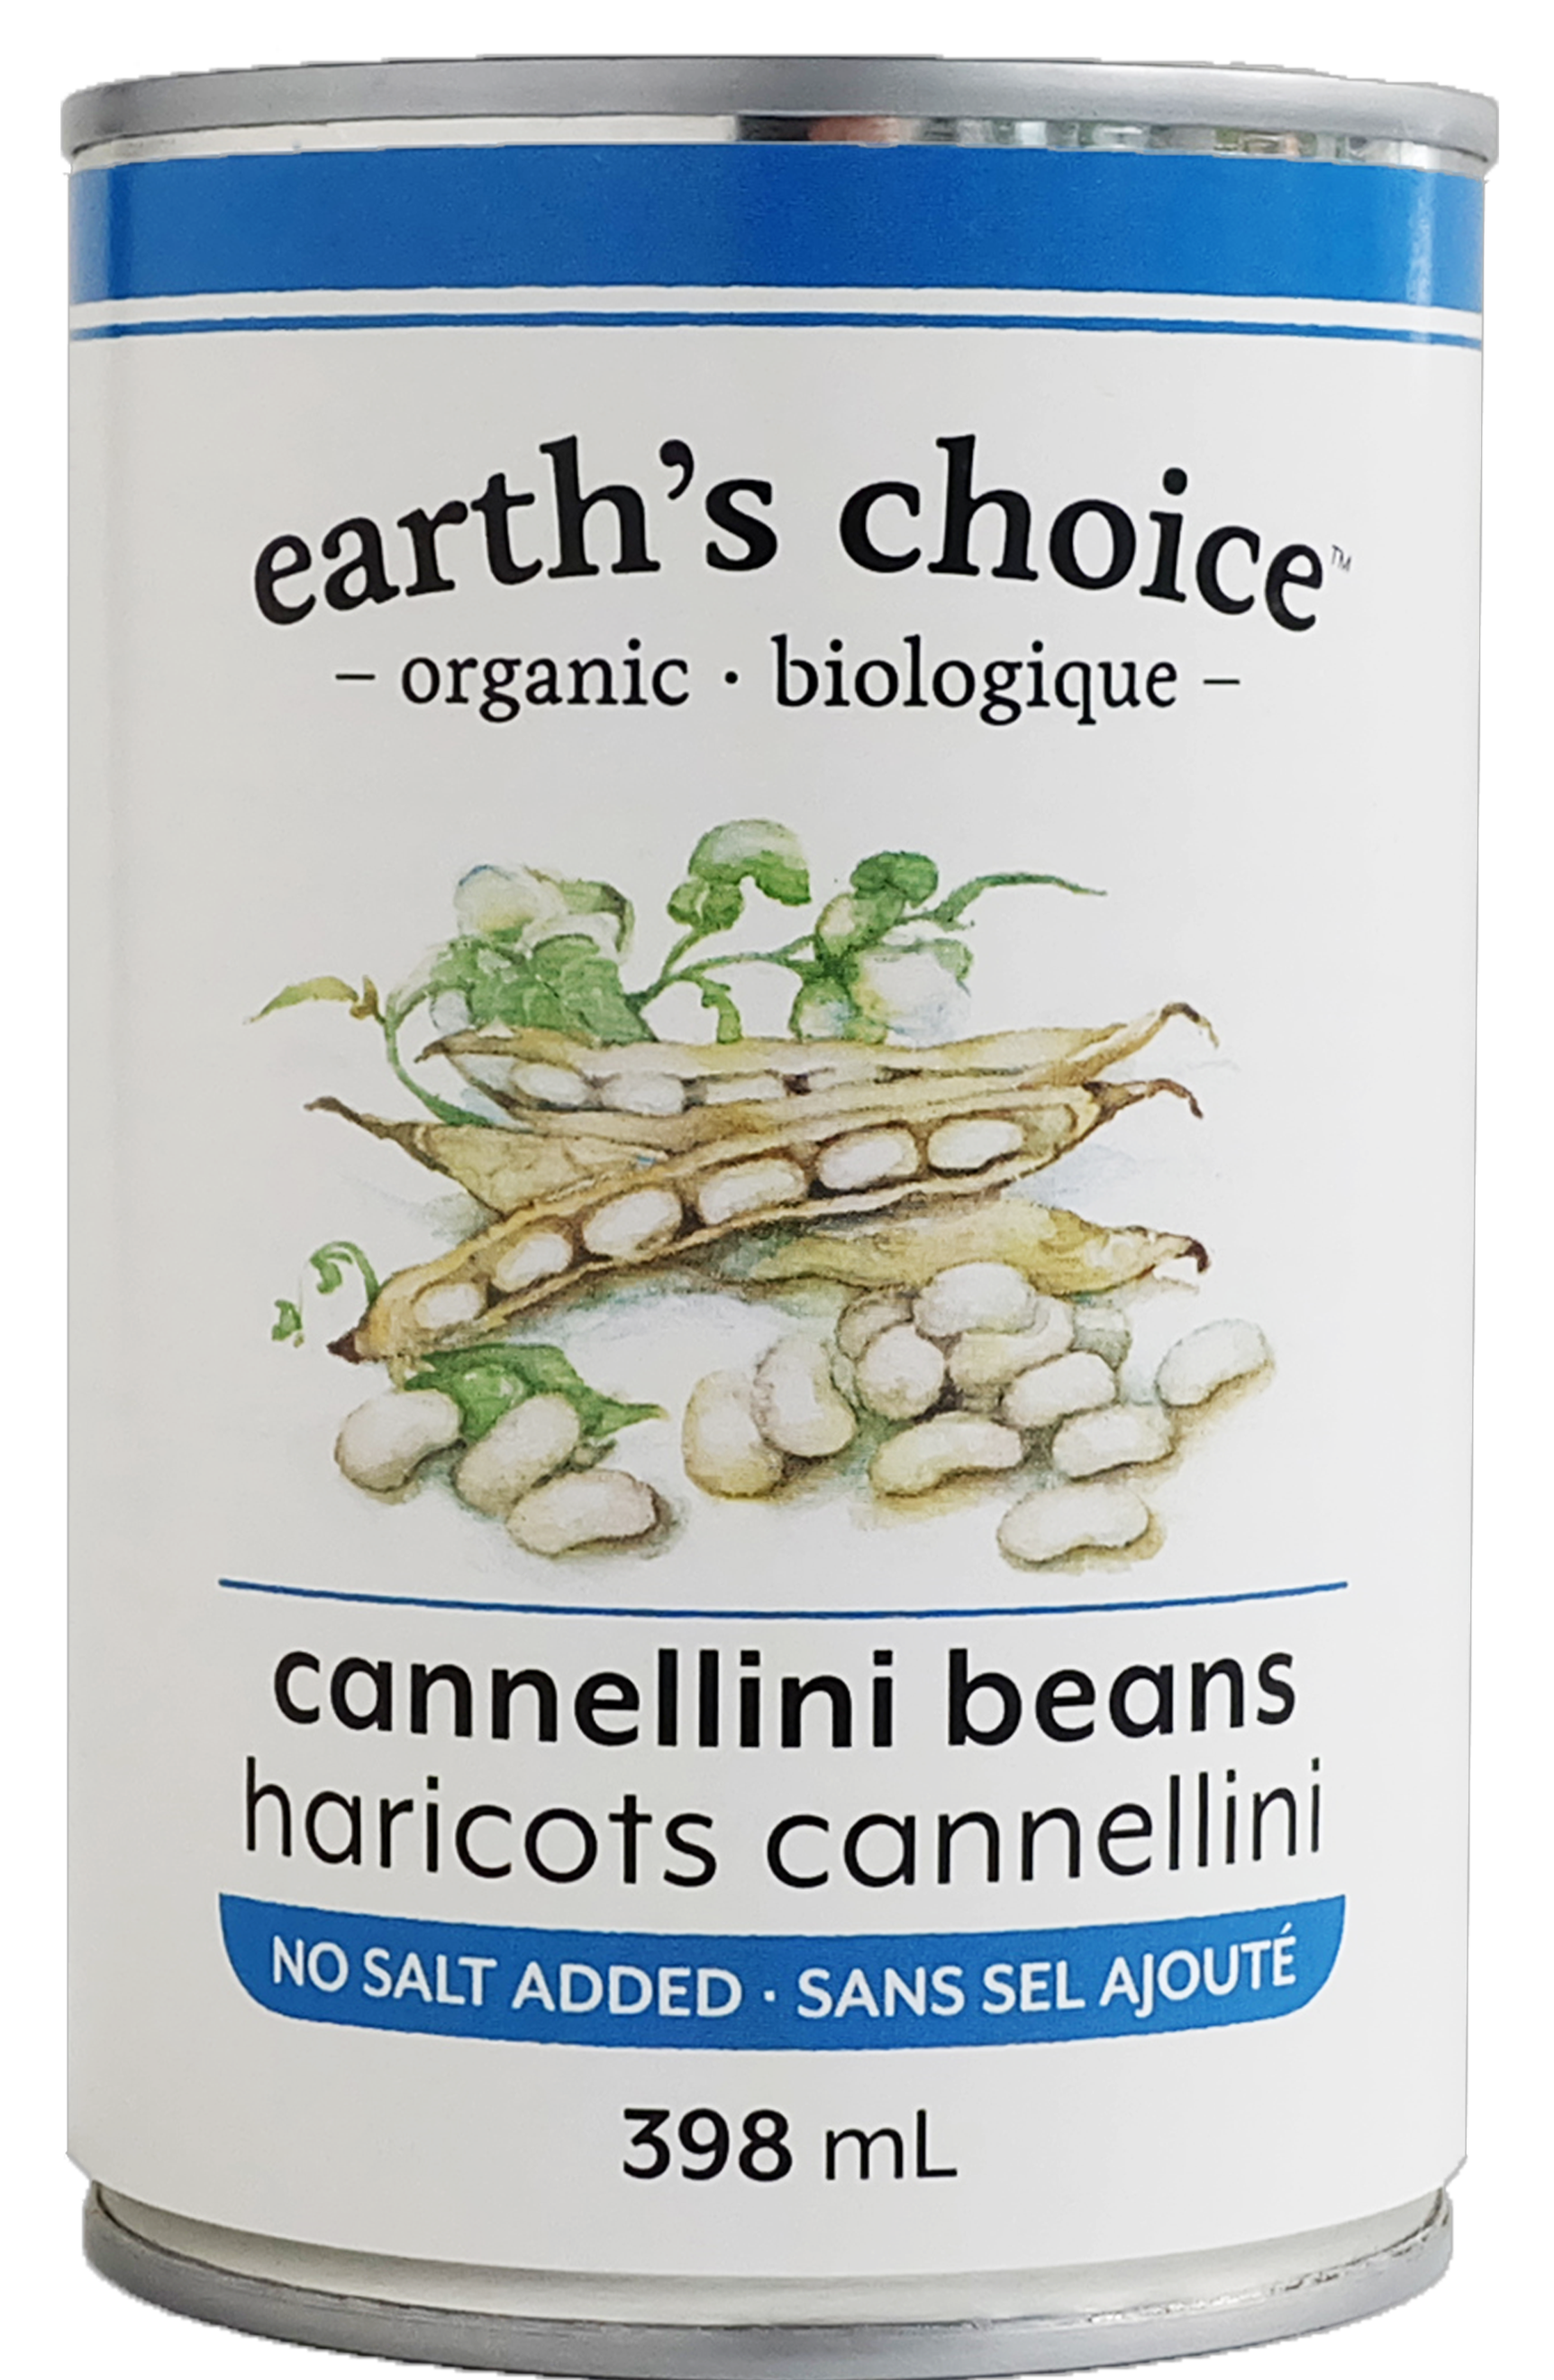 Cannellini Beans by earth's choice, no salt added, 398ml, Organic